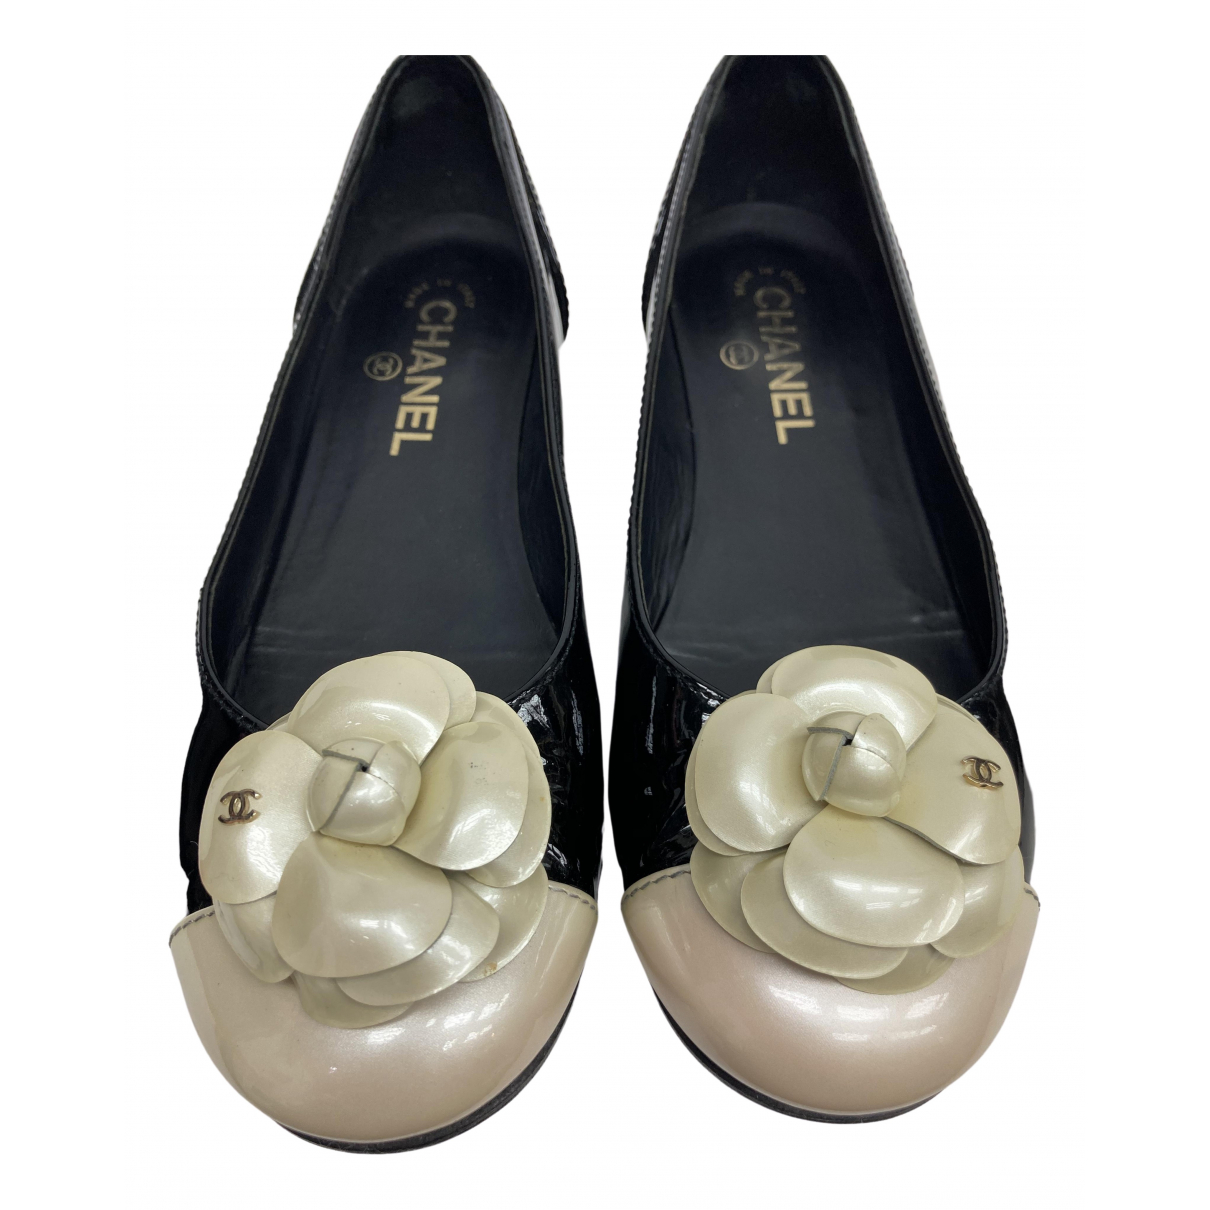 Chanel \N Black Patent leather Ballet flats for Women 38 EU